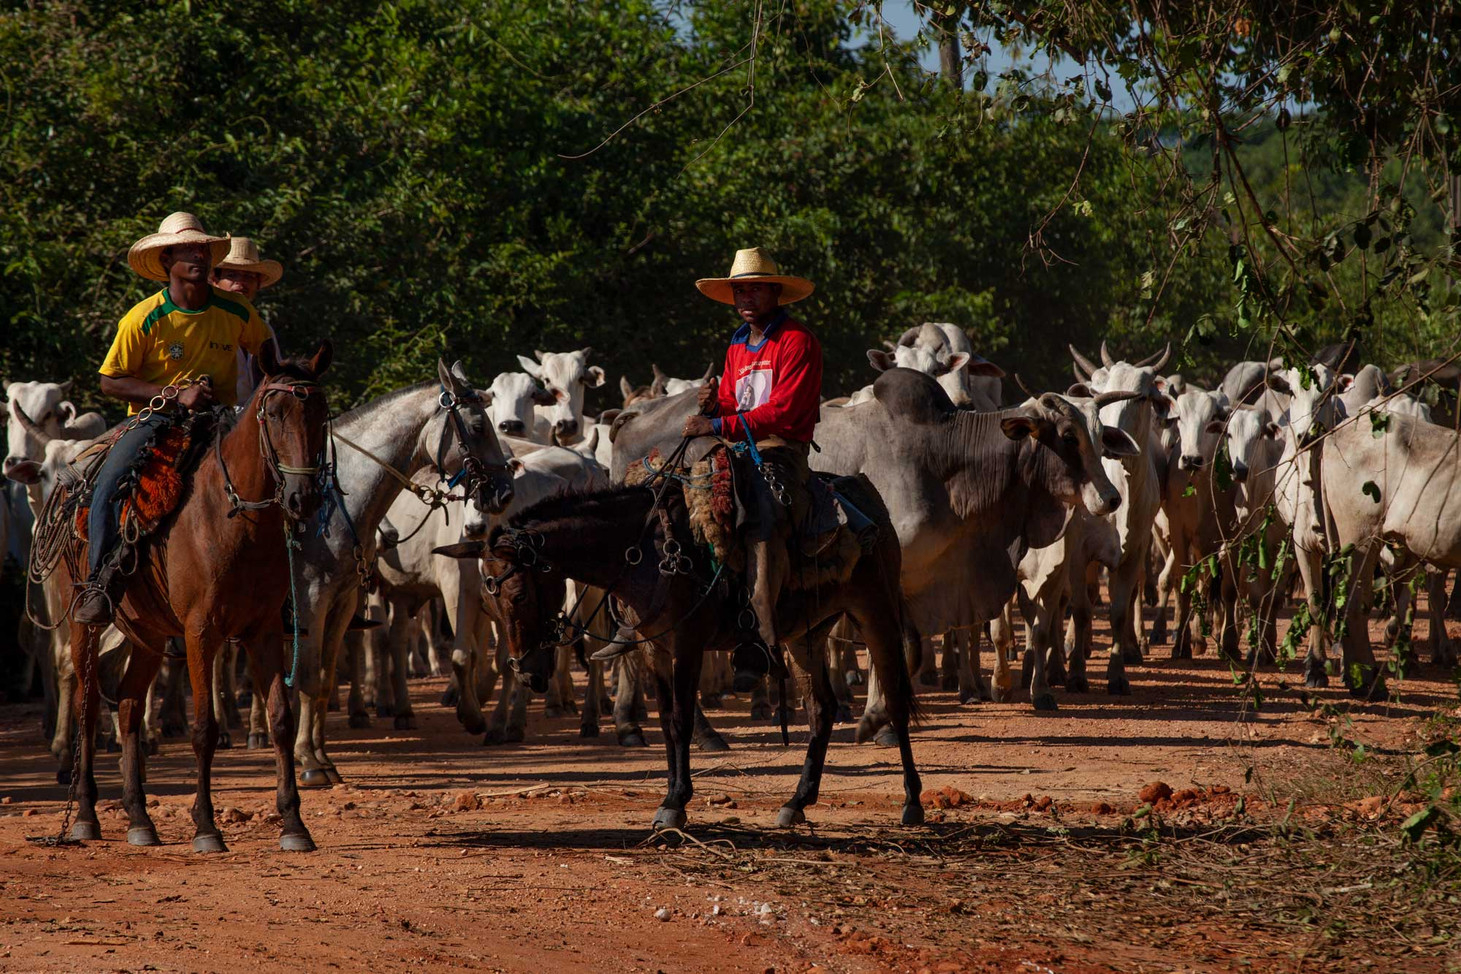 Cowboys patrol areas for illegal cattle raising, which is frequent due to high profitability and low fines from the government.